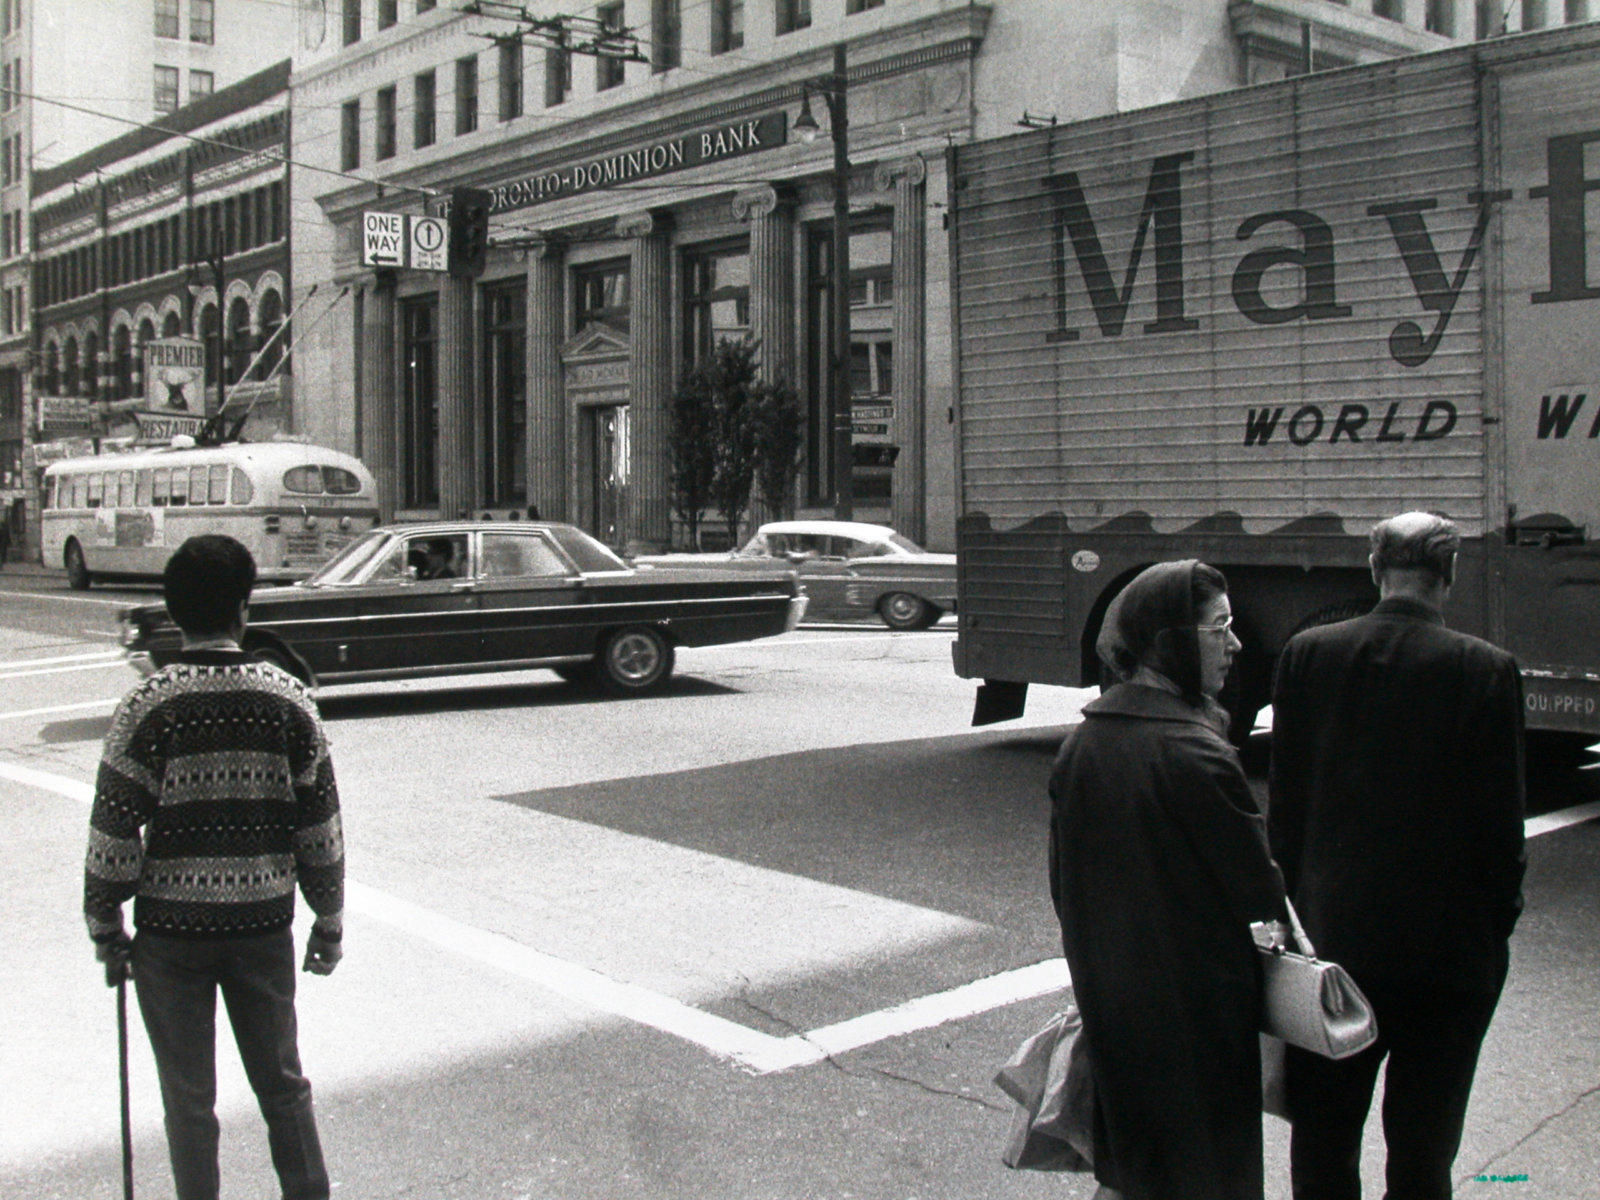 Ian Wallace, Intersection 1970, 1970–2008, black and white photograph, 10 x 14 in. (24 x 36 cm)